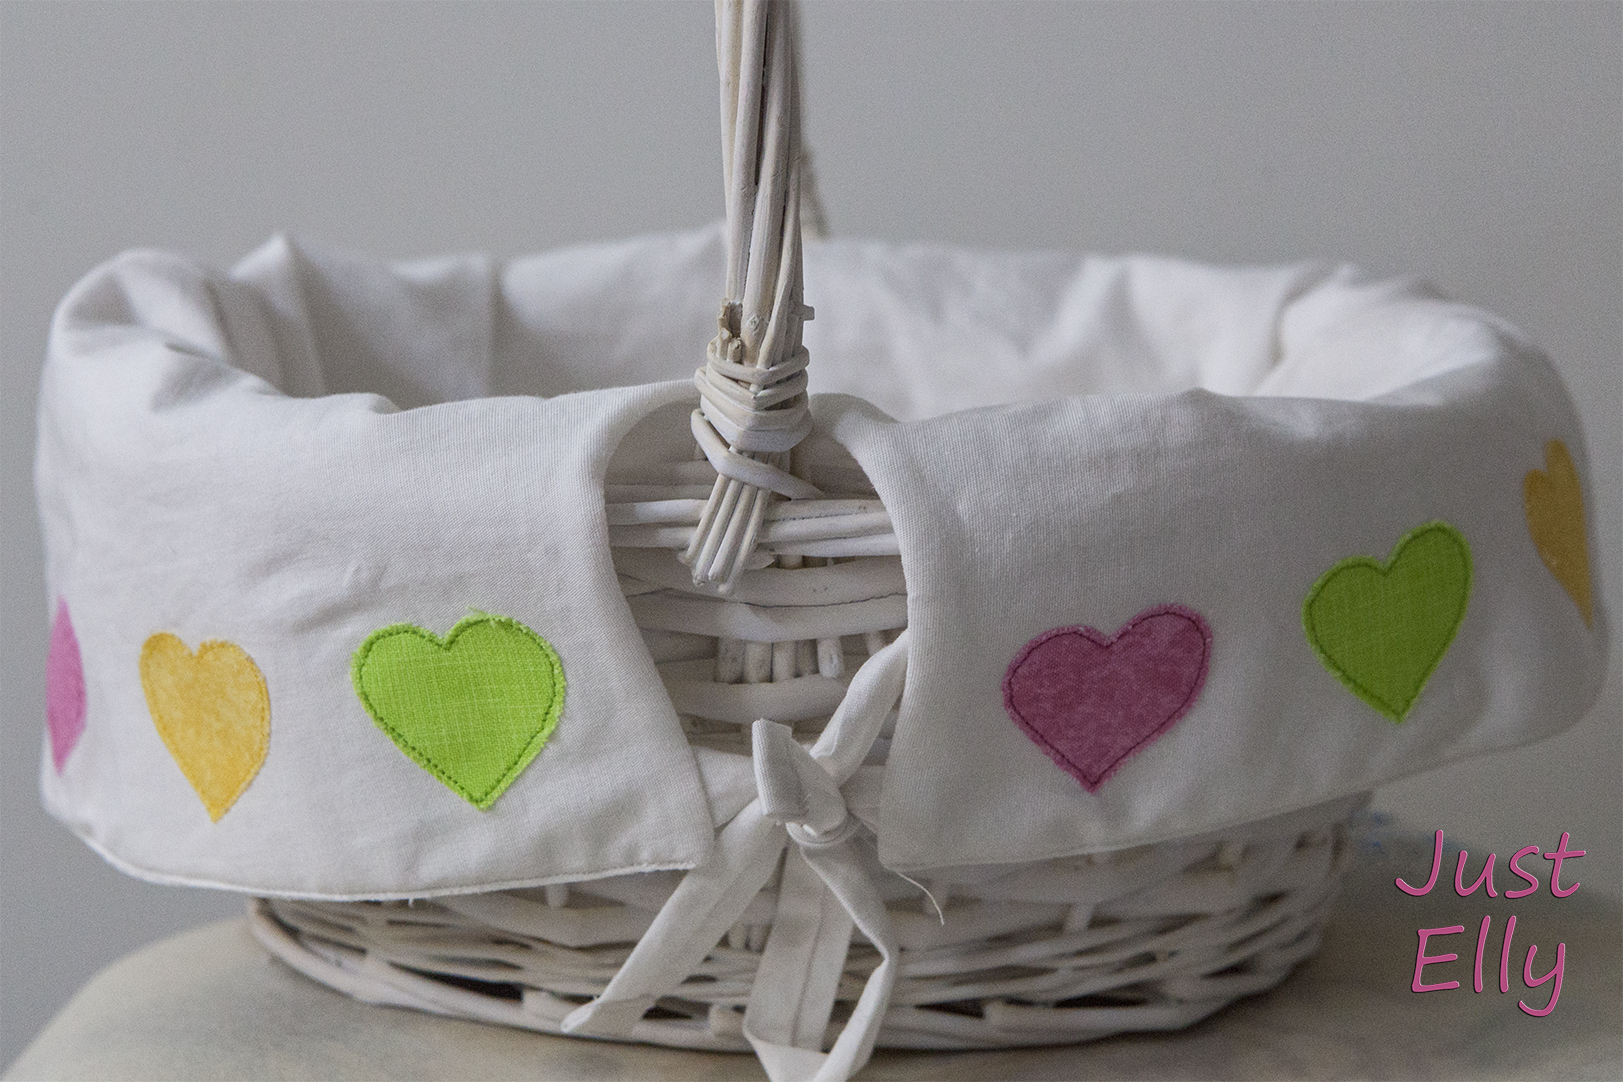 DIY new lining for baskets 01